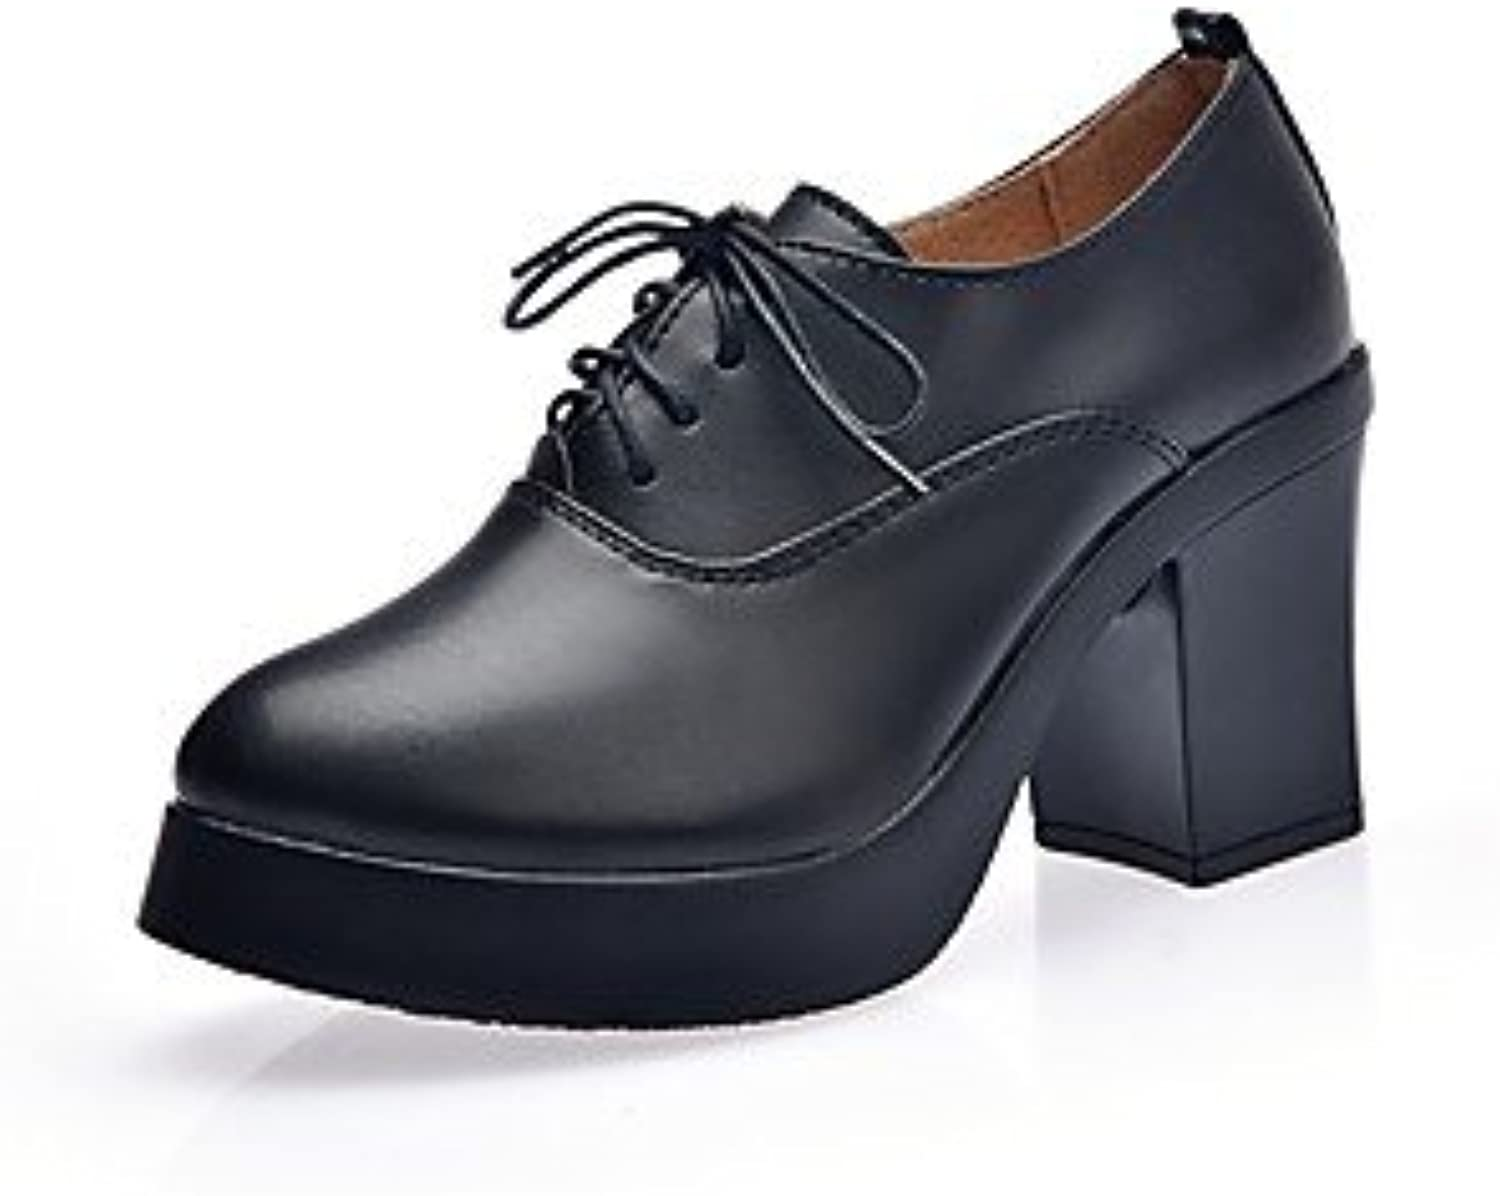 6a4cb0a5071 RTRY RTRY RTRY Women S Heel Bootie Fall Winter Leatherette Casual Office   Amp  Career Black 1In-1 3 4In B075MBMX2V Parent f4c476